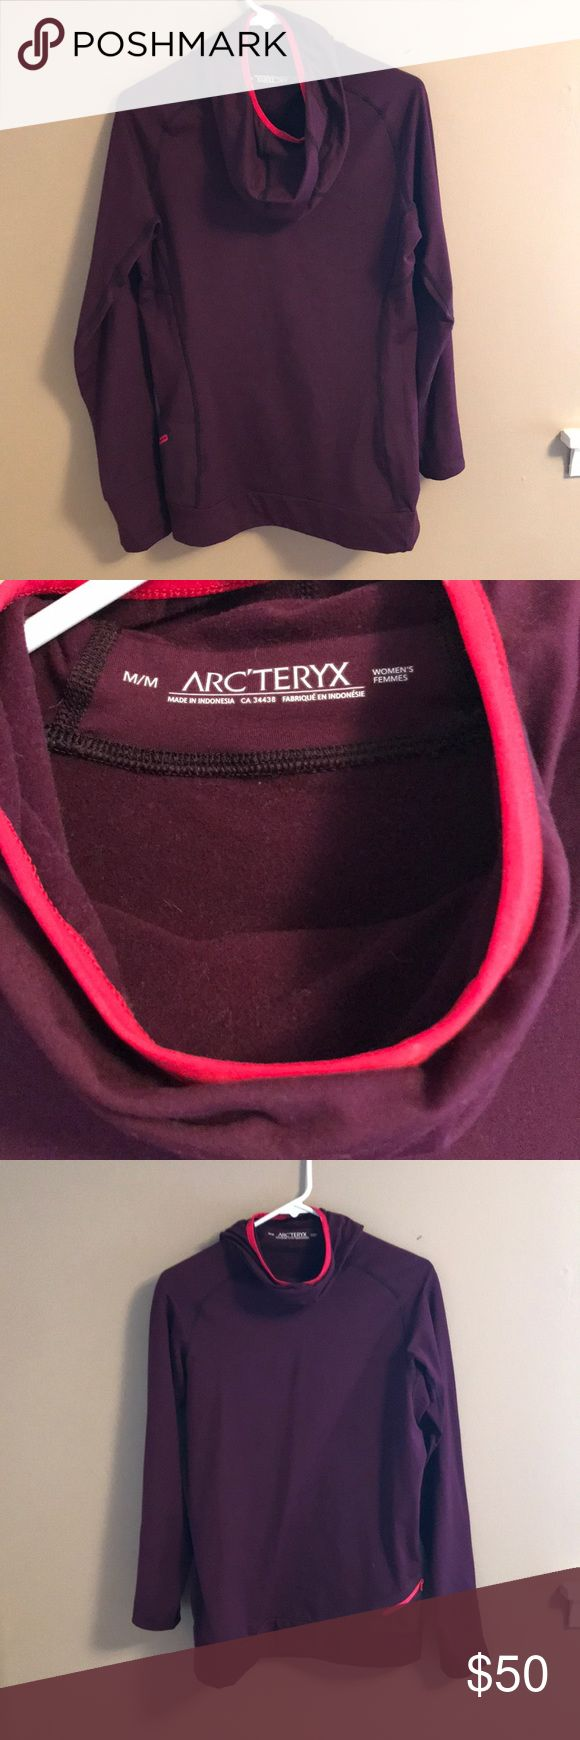 Women's cowl neck hoodie Gorgeous purple Women's Arc'teryx fleece-lined tunic. Perfect for outdoor adventures, the style is very warm. Arc'teryx Sweaters Cowl & Turtlenecks